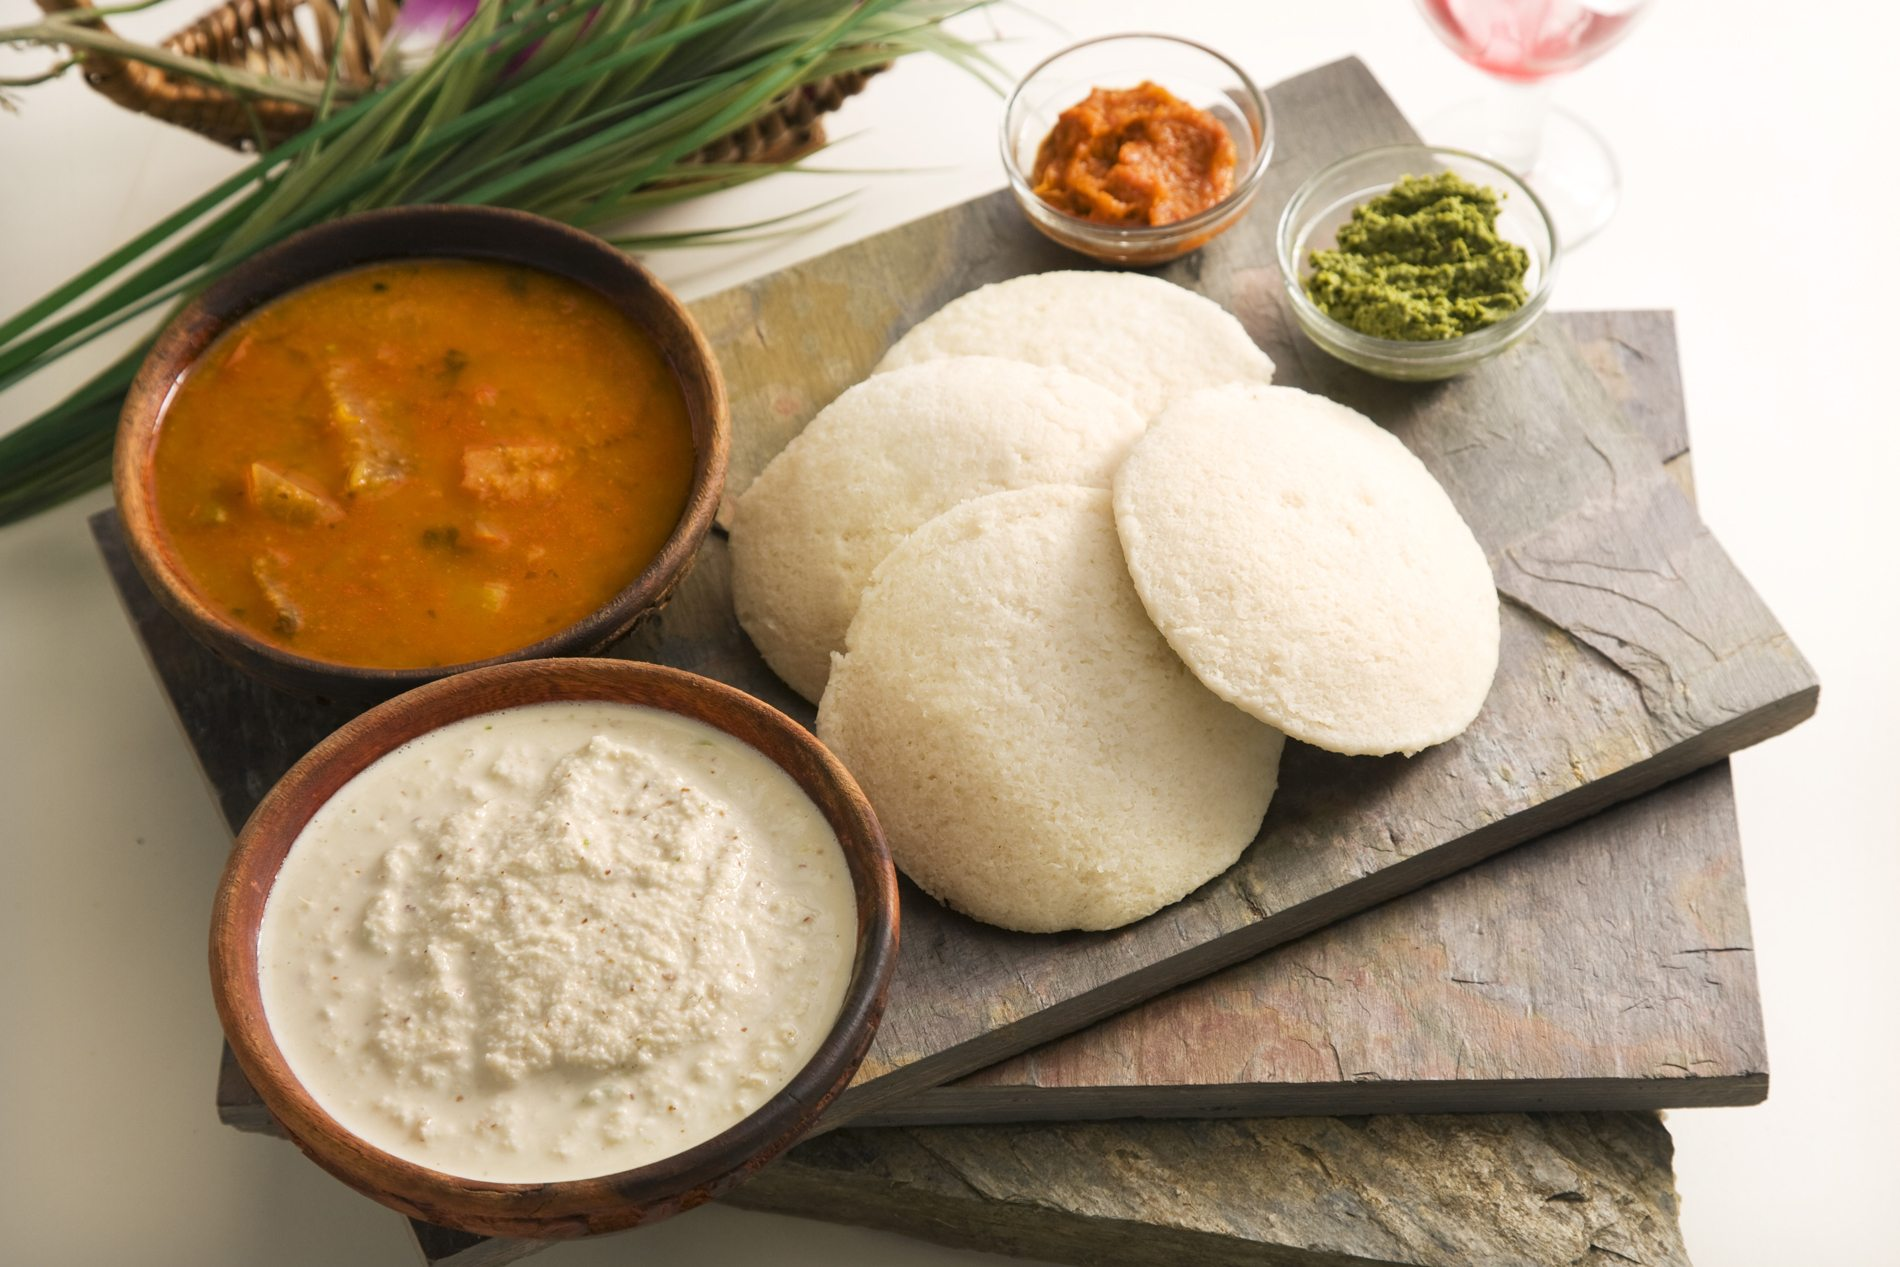 Guests on the culinary tour will see how such dishes as idli sambhar, above, are made